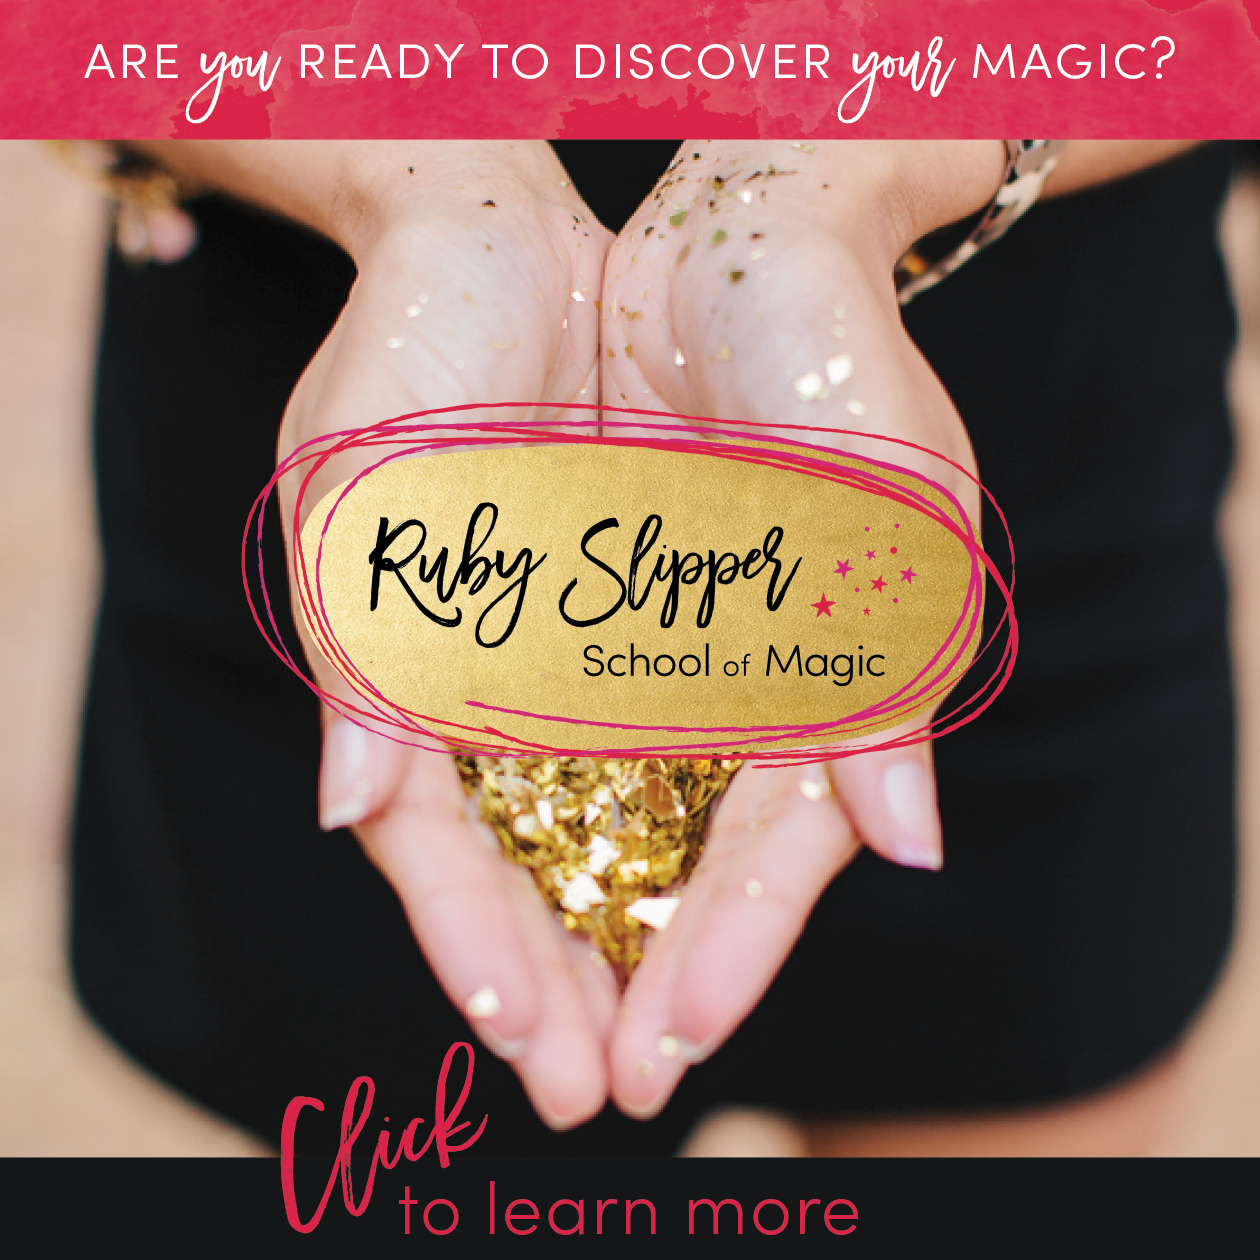 If you're ready to begin accessing all the powerful magic and wisdom that lives inside you, you need to sign up for this challenge!